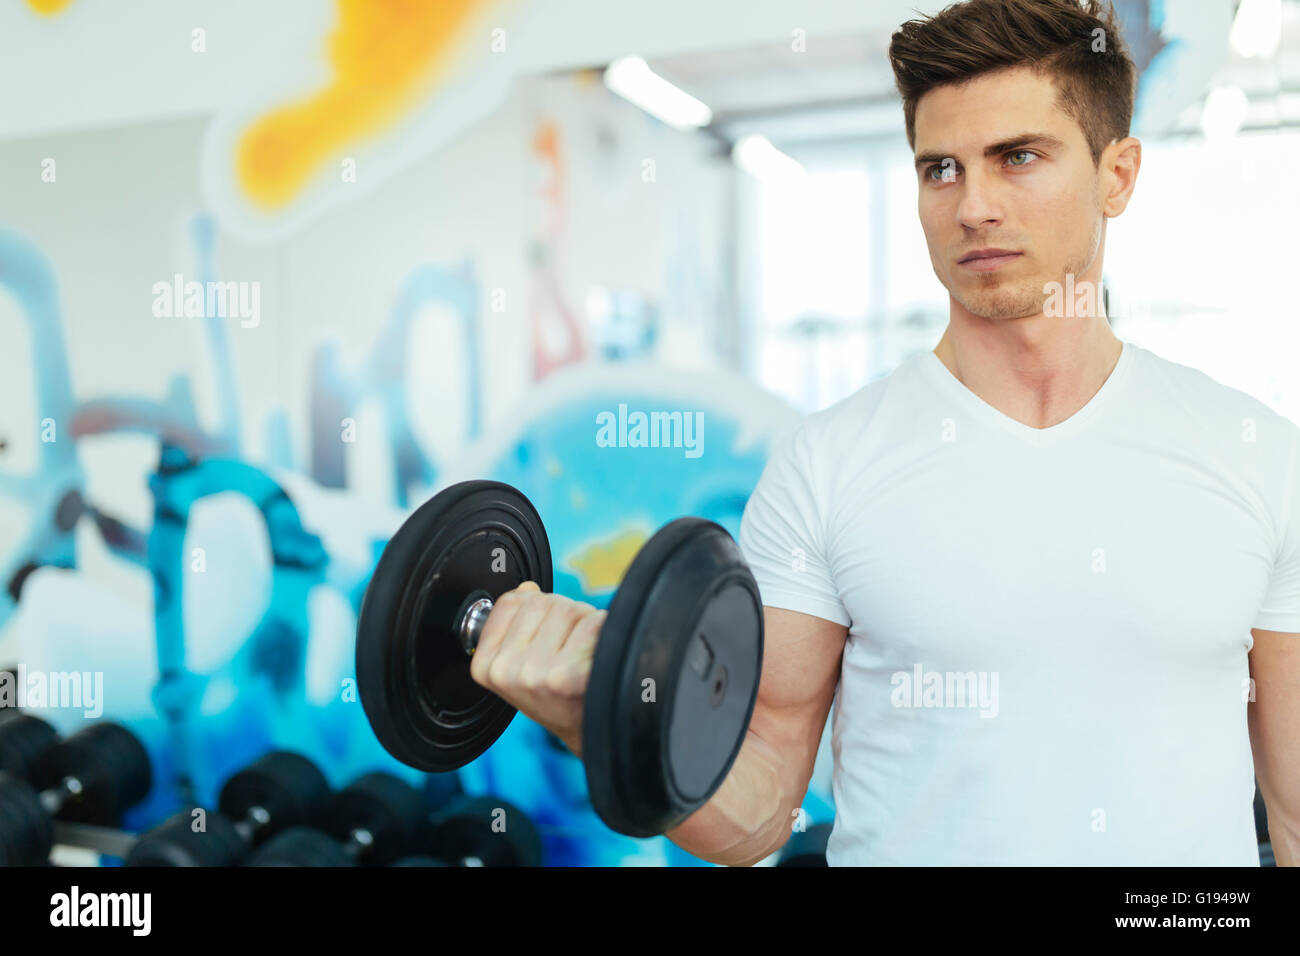 Handsome man lifting weights in gym et demeurer en forme Banque D'Images